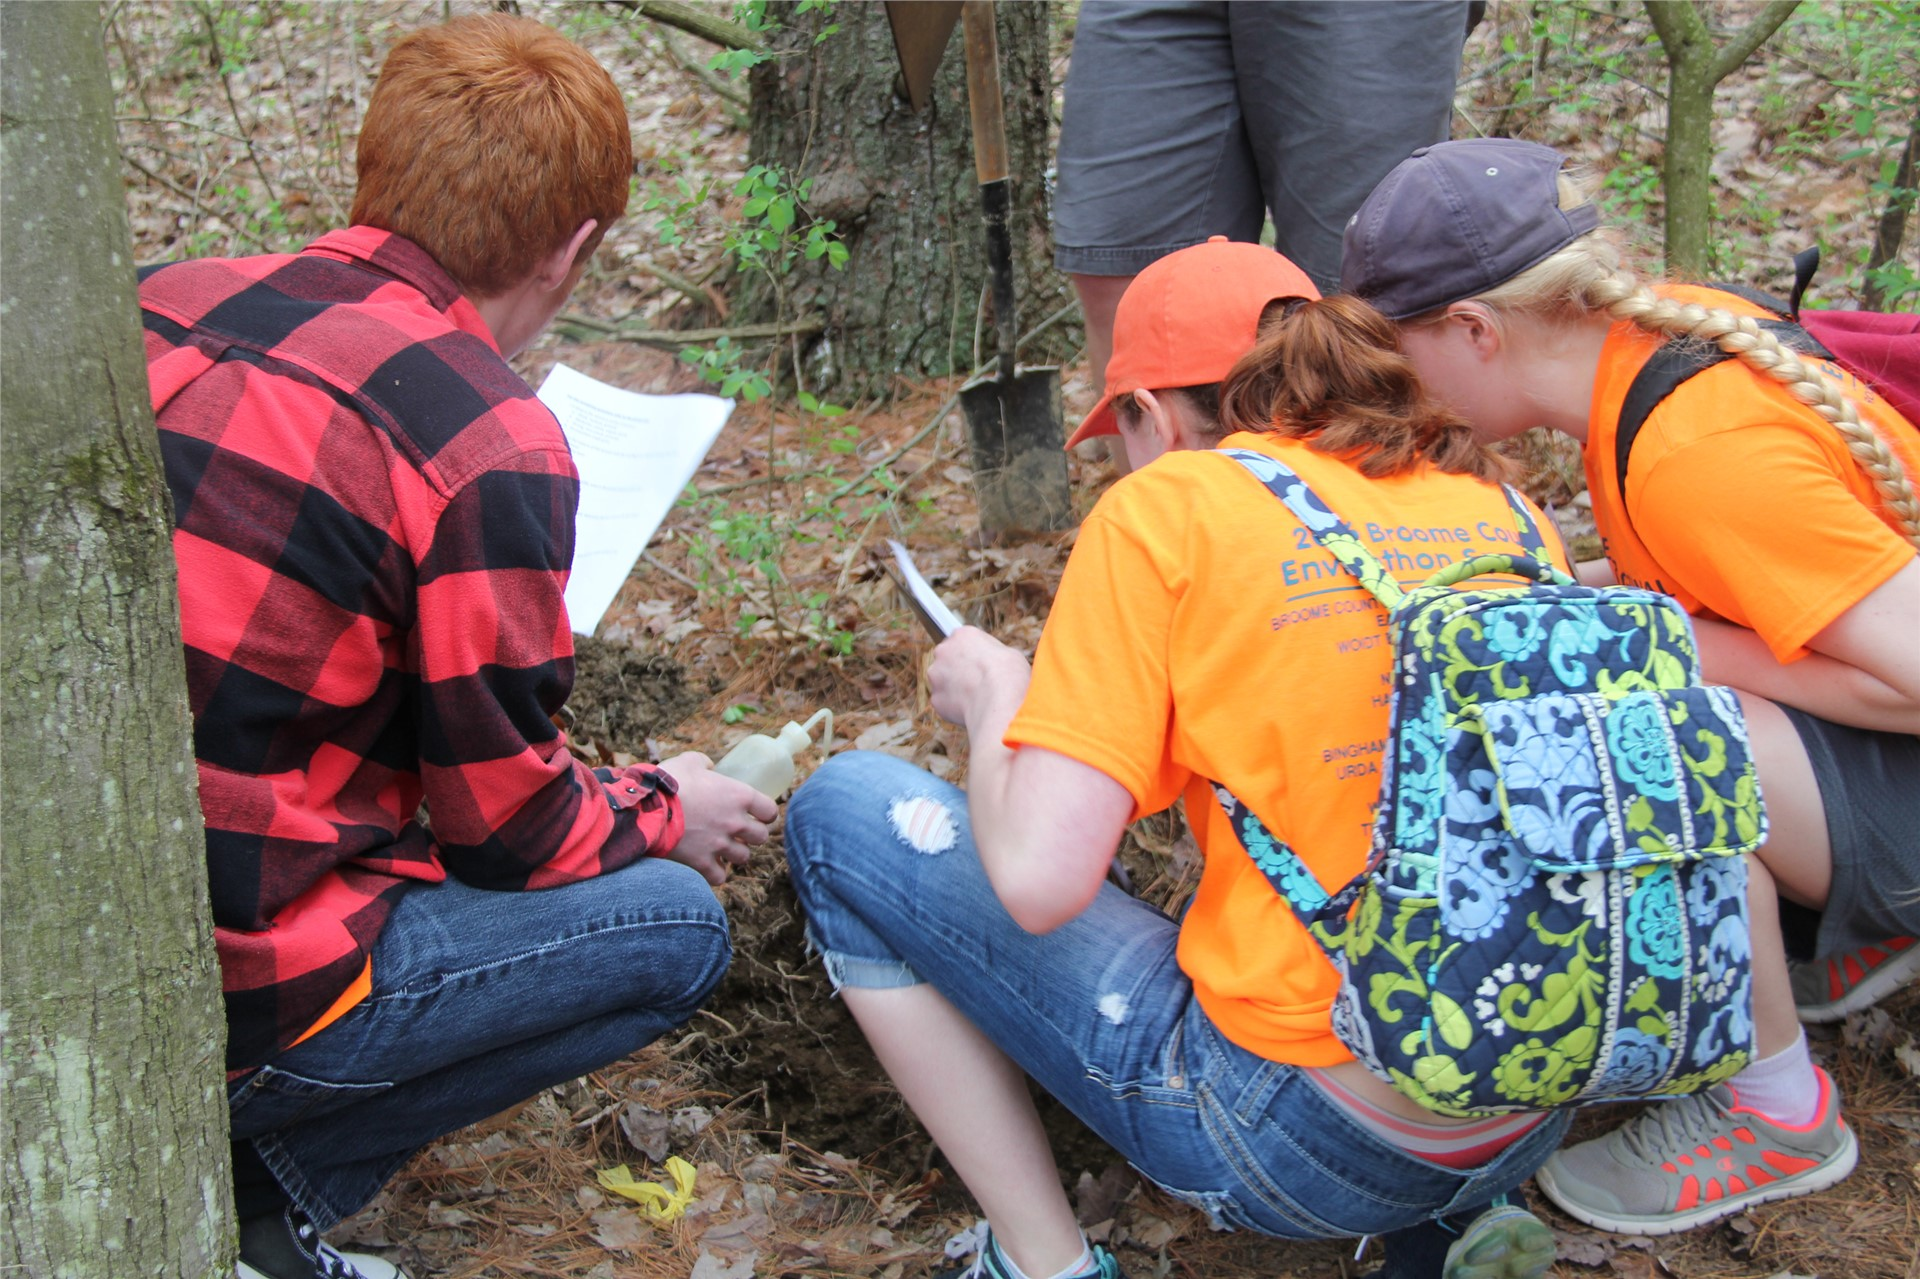 students looking at object in wooded area